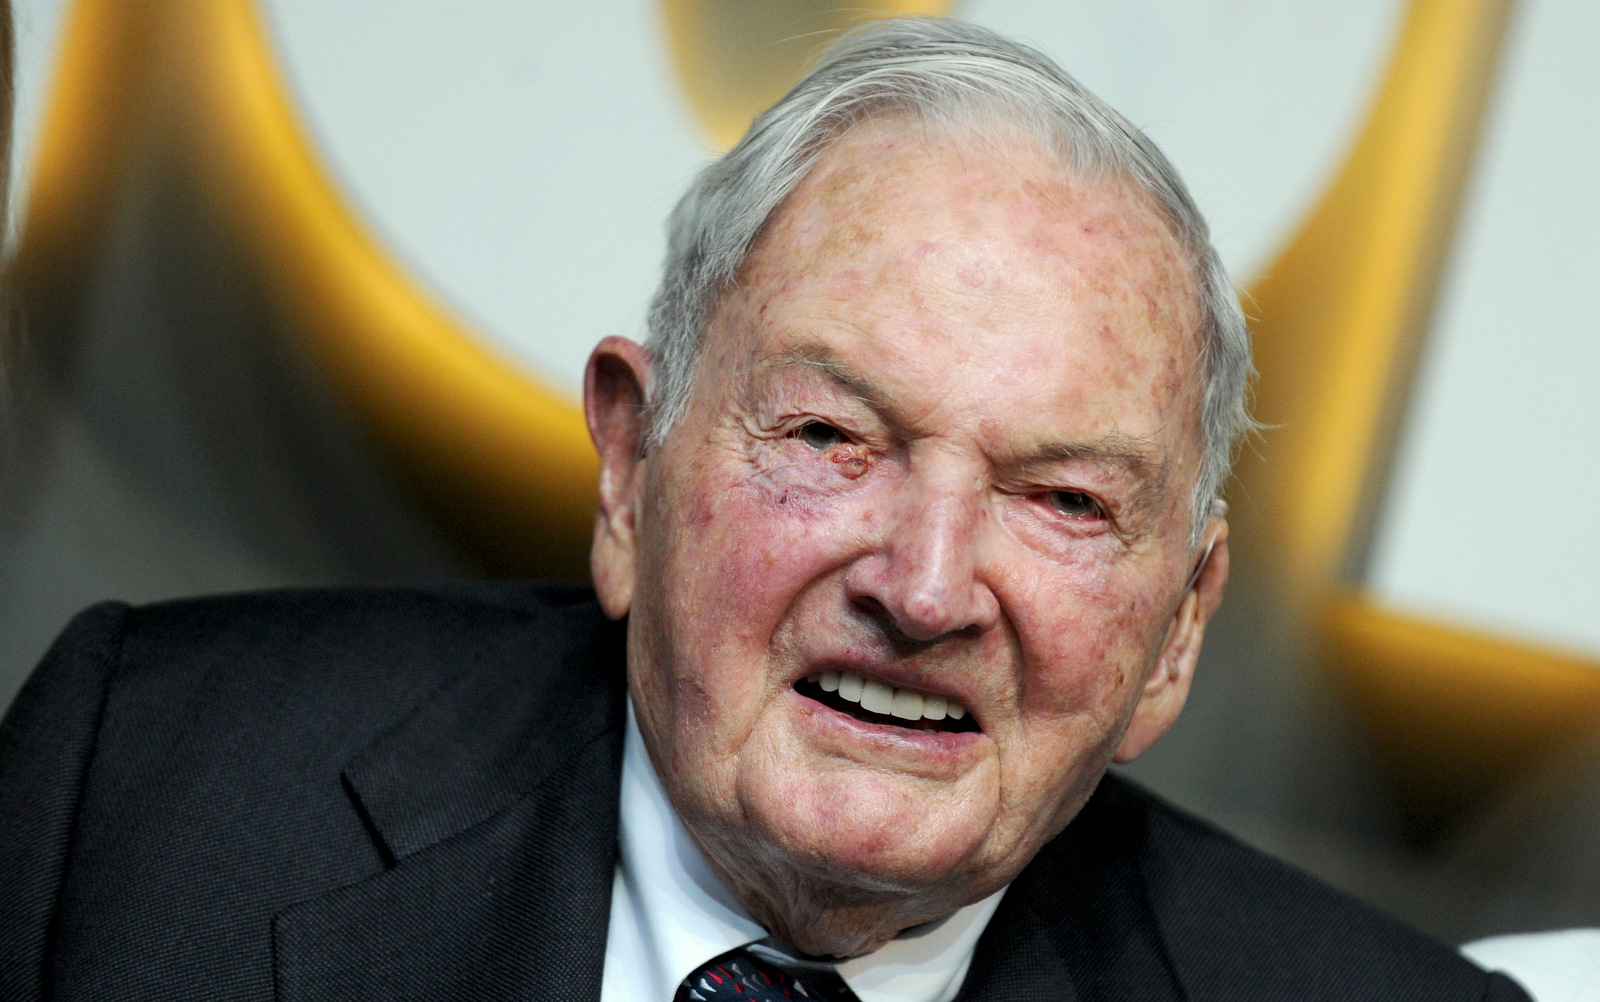 David Rockefeller's true legacy is much more mired in controversy than major publications seem willing to admit. (Photo: Dennis Van Tine/STAR MAX/IPx)